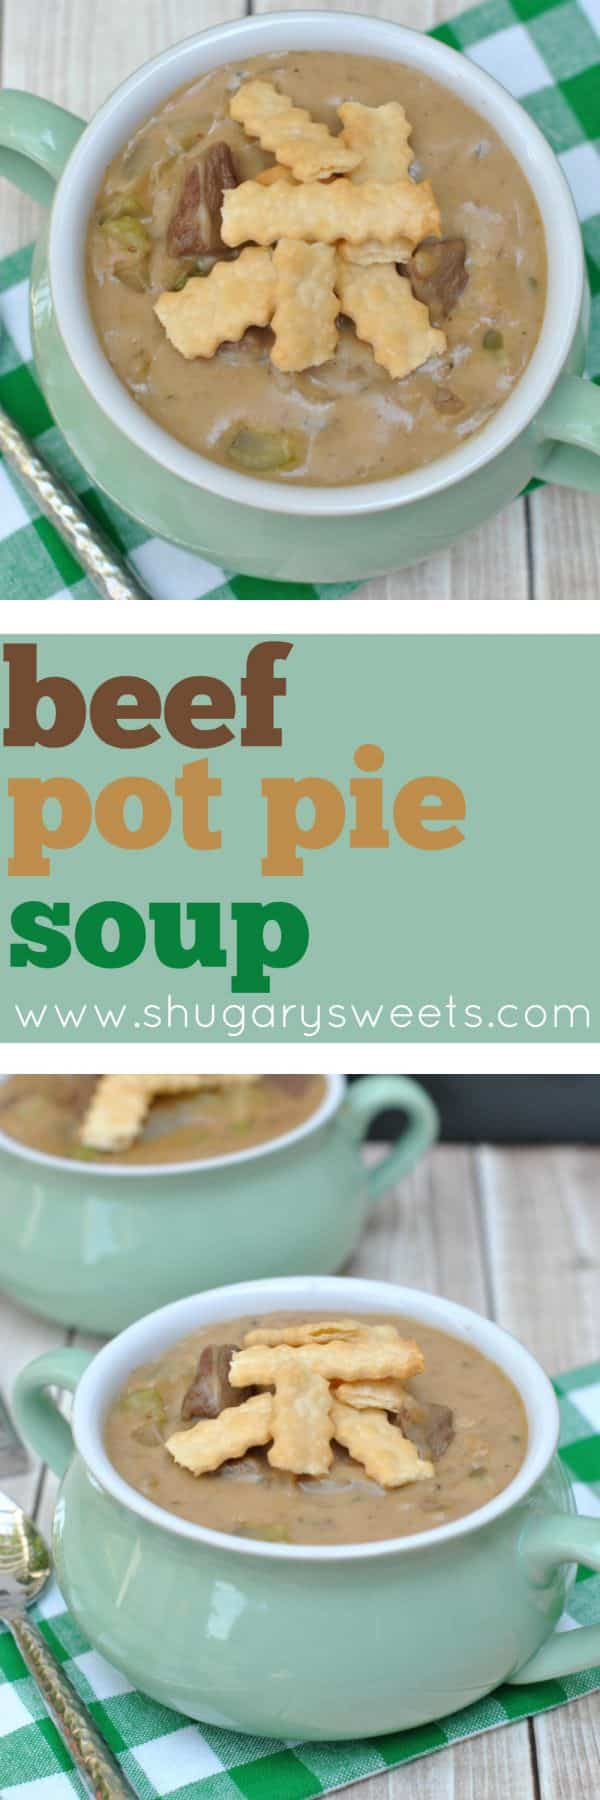 "Looking for something different for dinner, yet still has all the elements of comfort food? Try making some Beef Pot Pie ""Stoup"" with pie crust strips for dinner!! So delicious!"